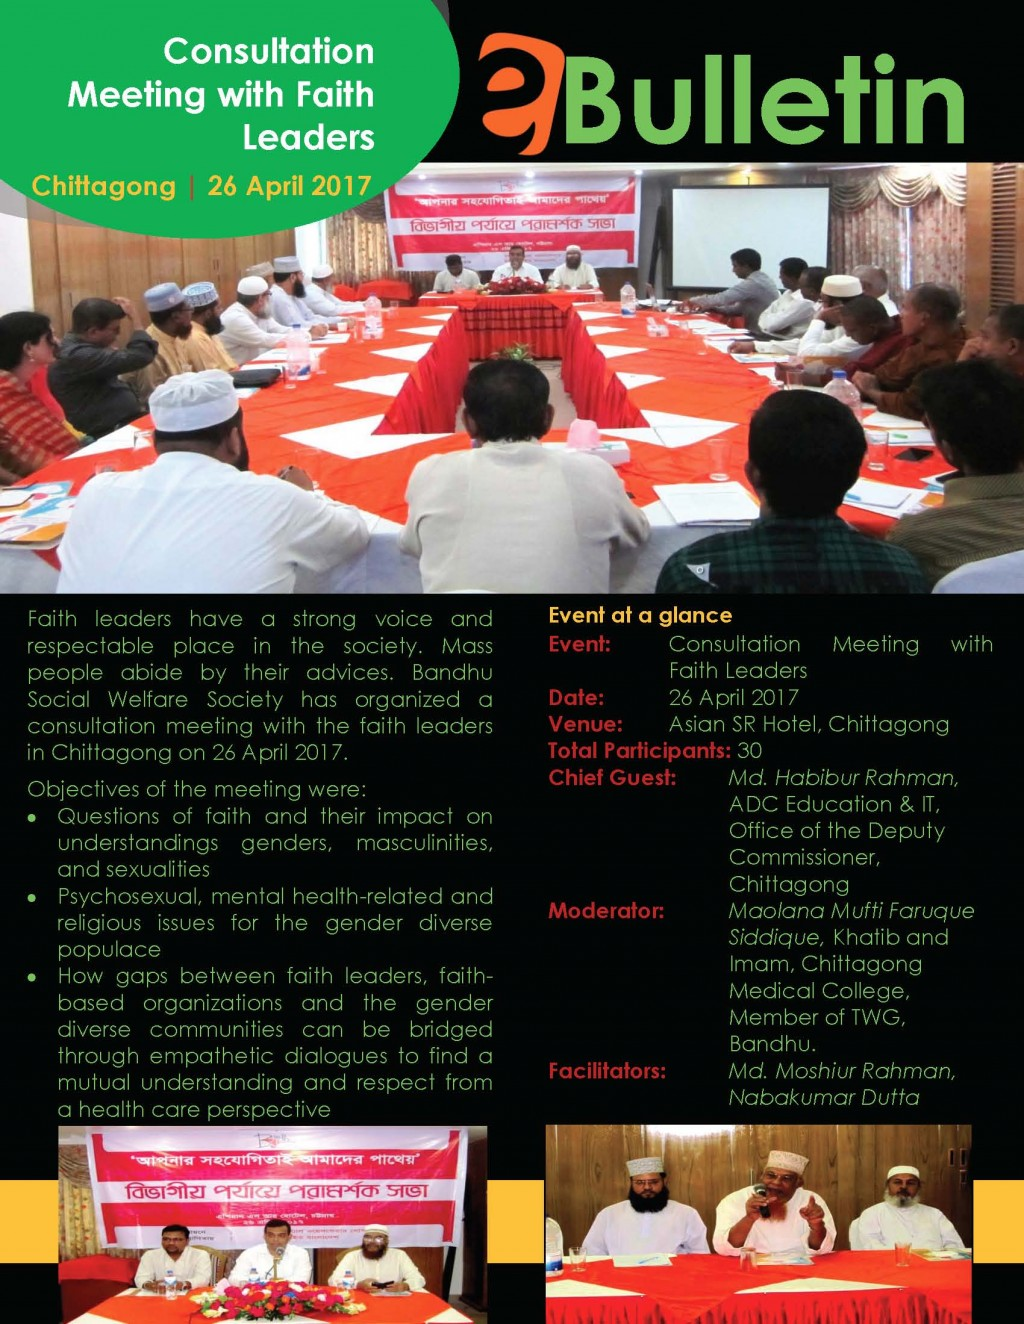 E-Bulletin_Consultation_Meeting_with_Faith_Leaders_Chittagong_Page_1